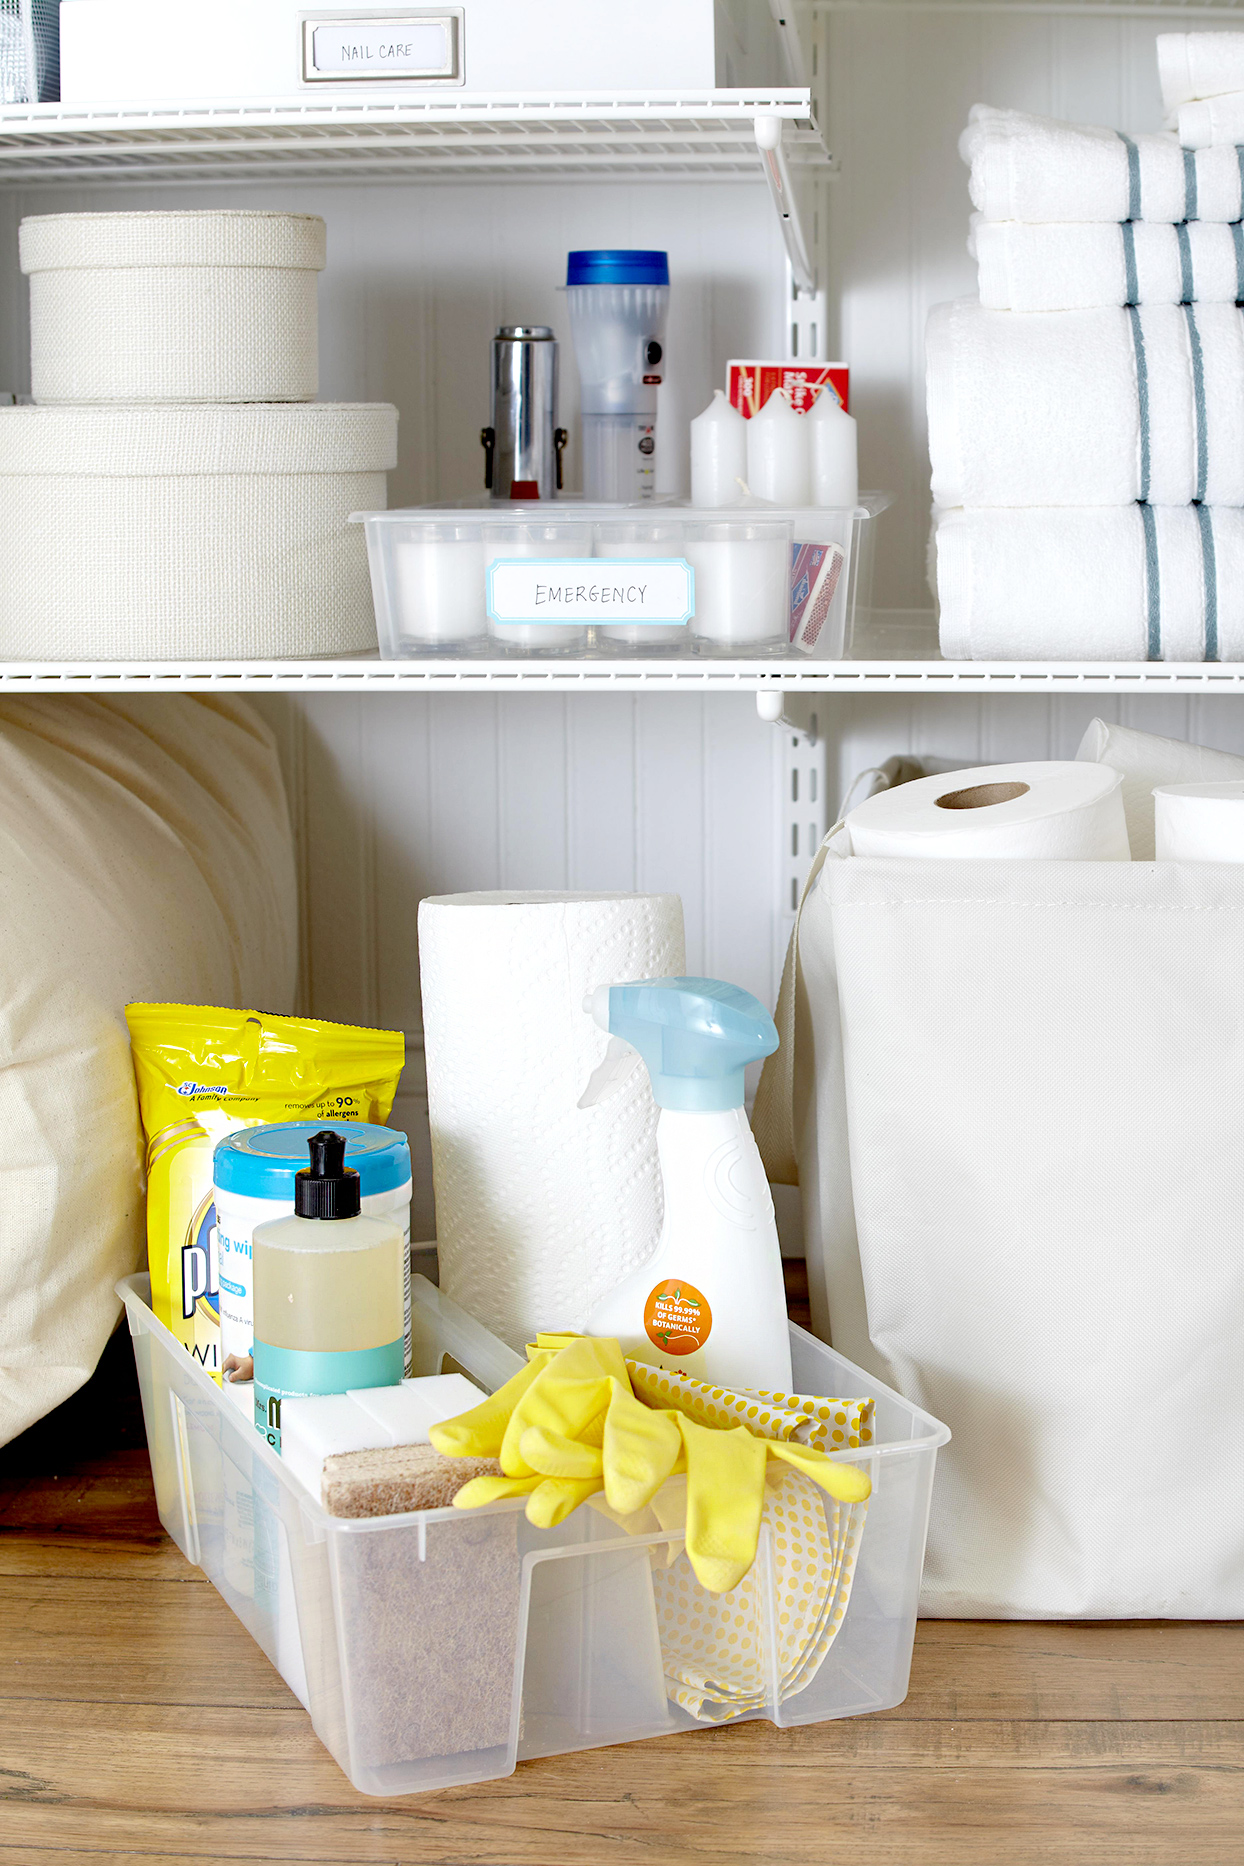 Cleaning supplies stored under shelf